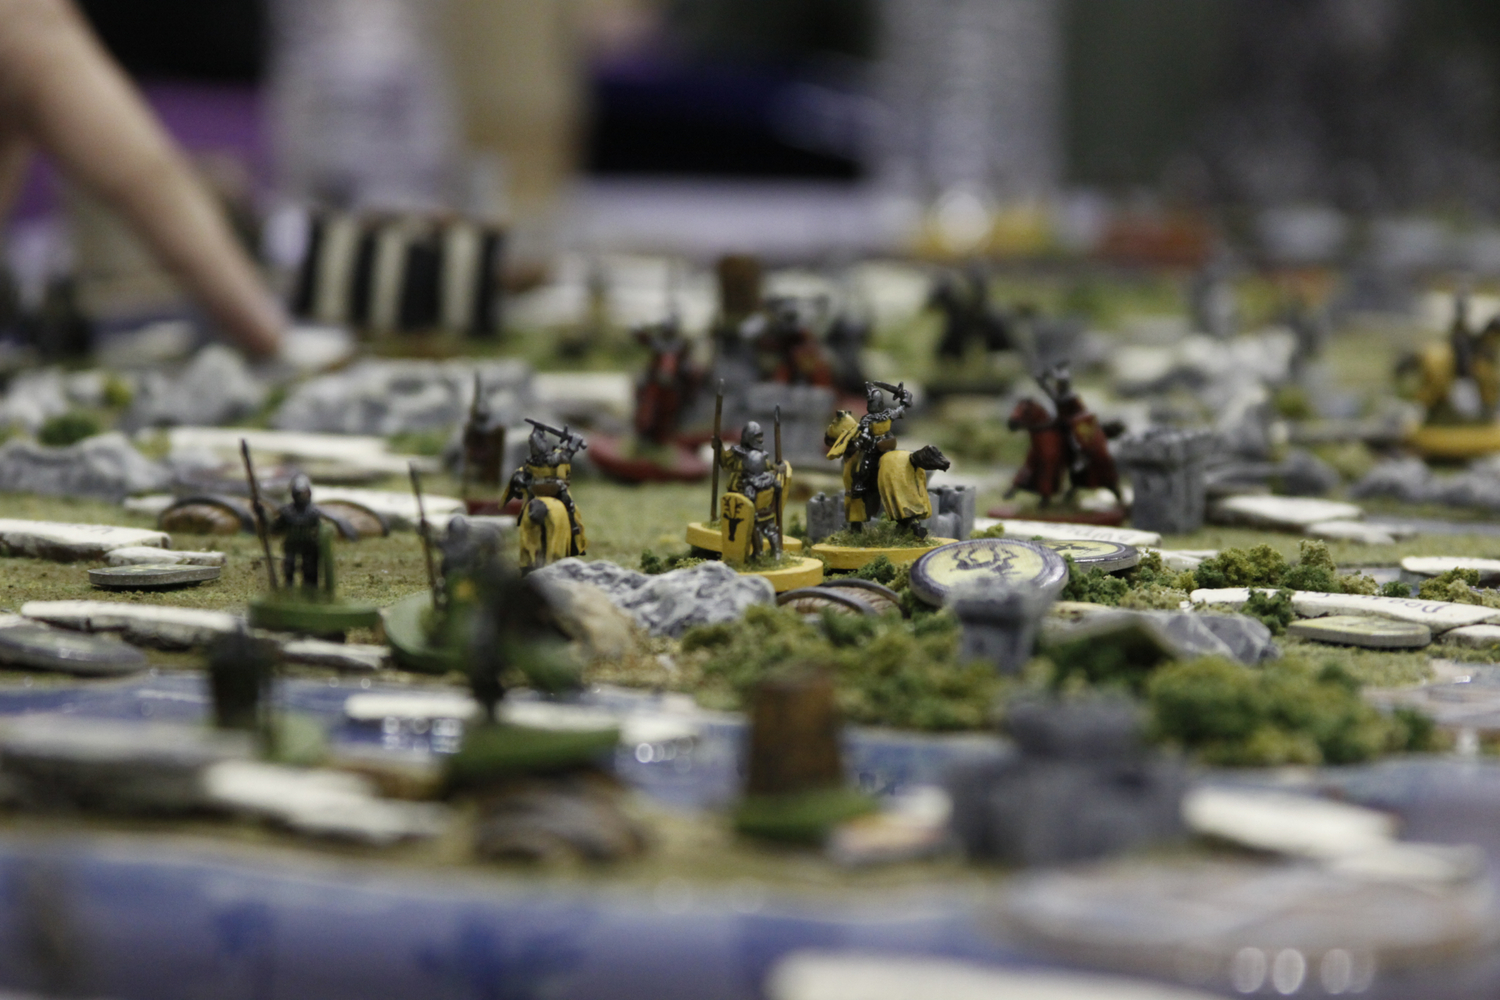 This Custom Game Of Thrones Board Game Is A Work Of Art